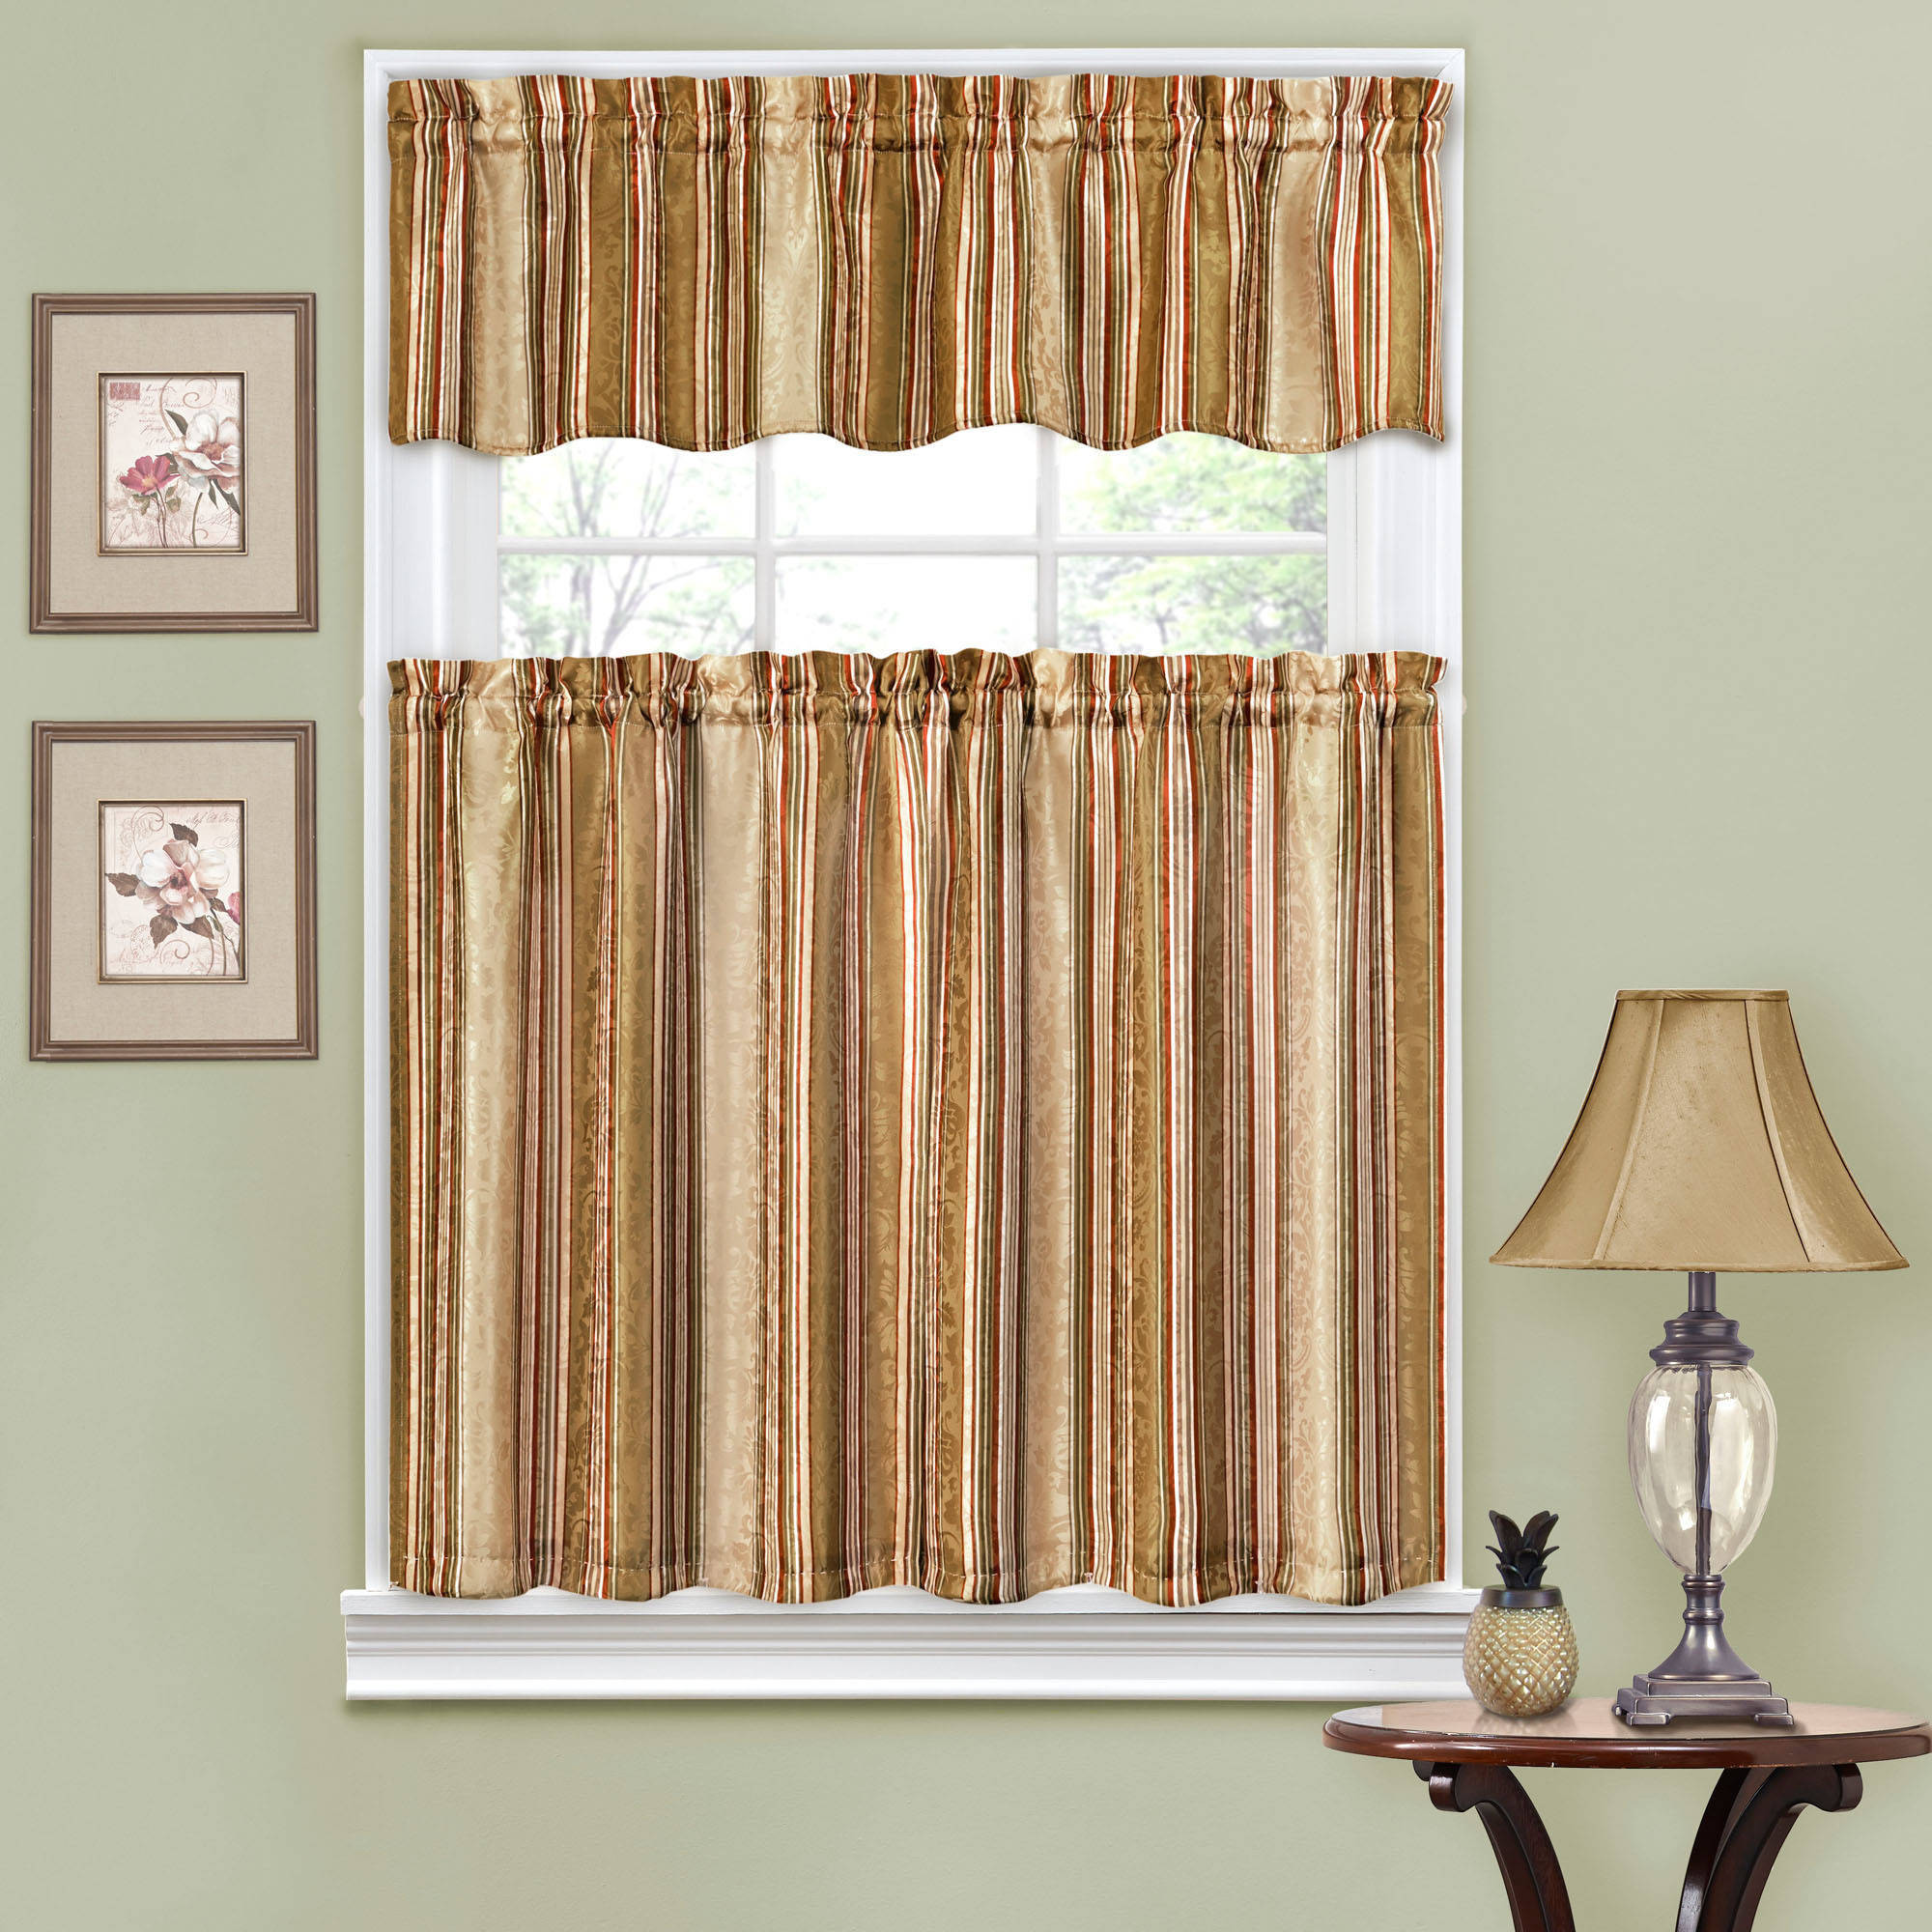 Fleetwood kitchen curtains set of 2 with valence for Valance curtains for kitchen